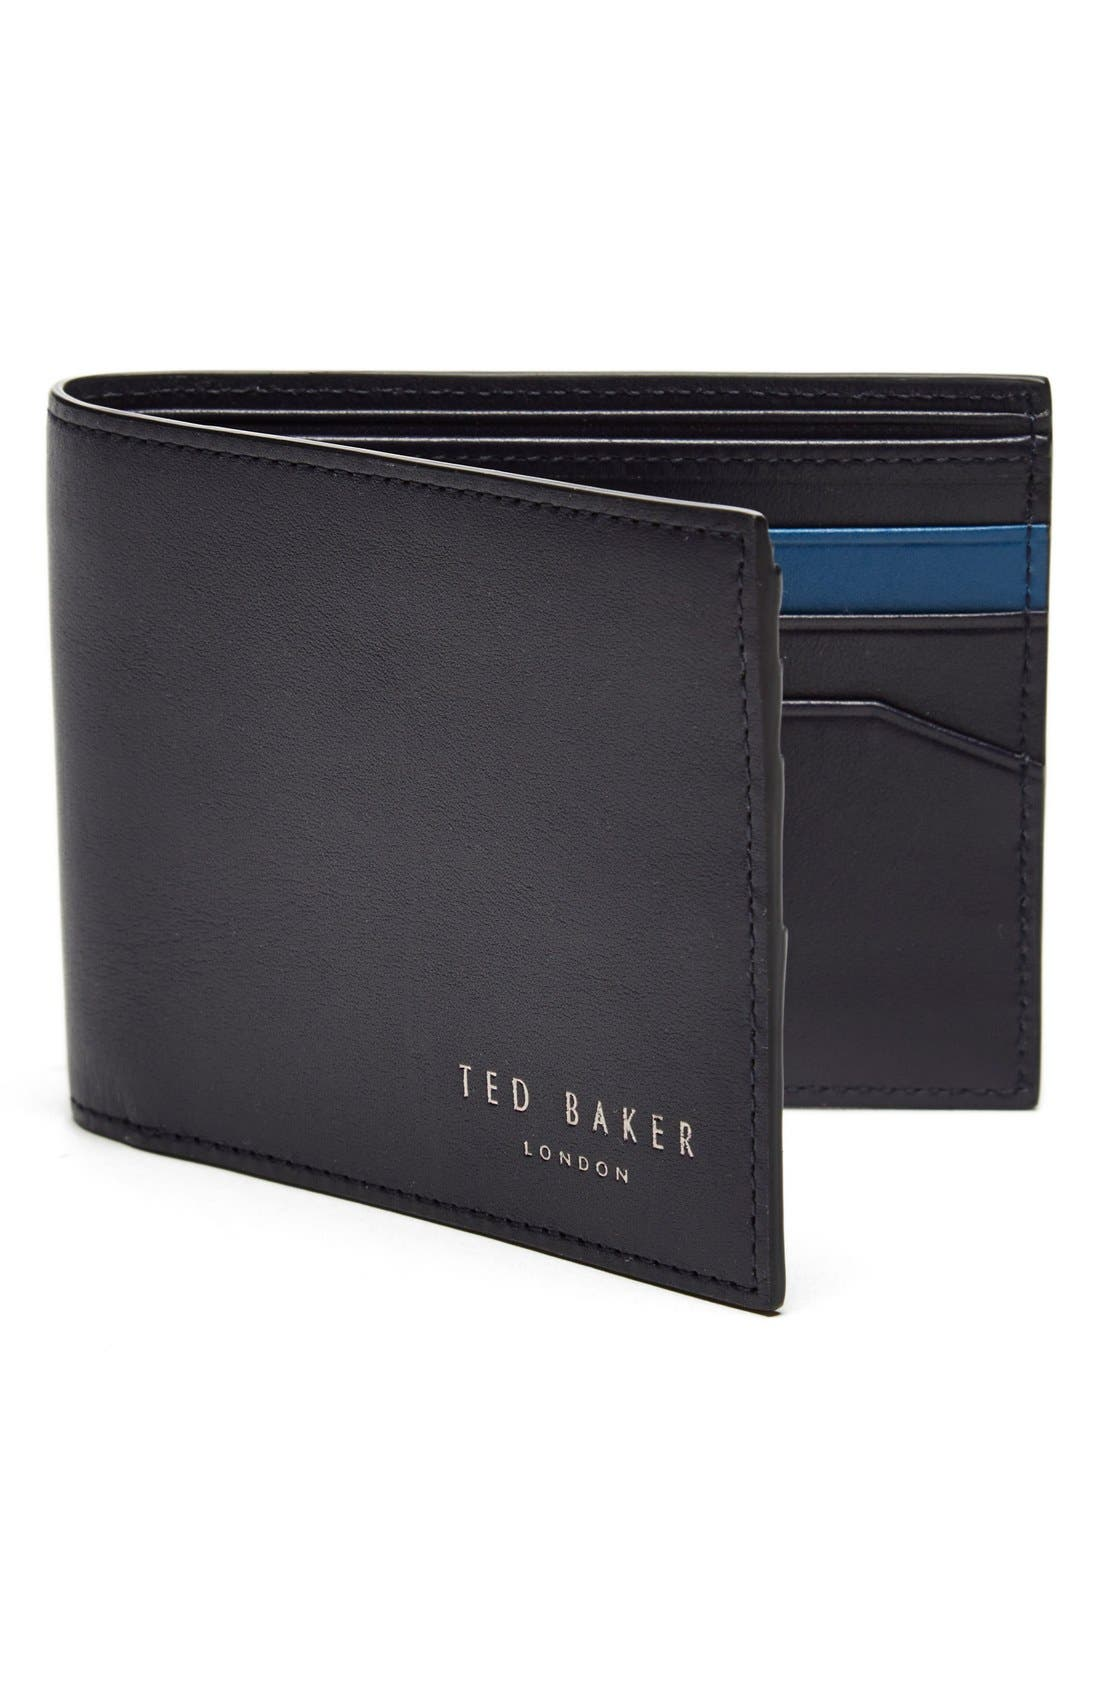 Leather Wallet,                             Main thumbnail 1, color,                             410